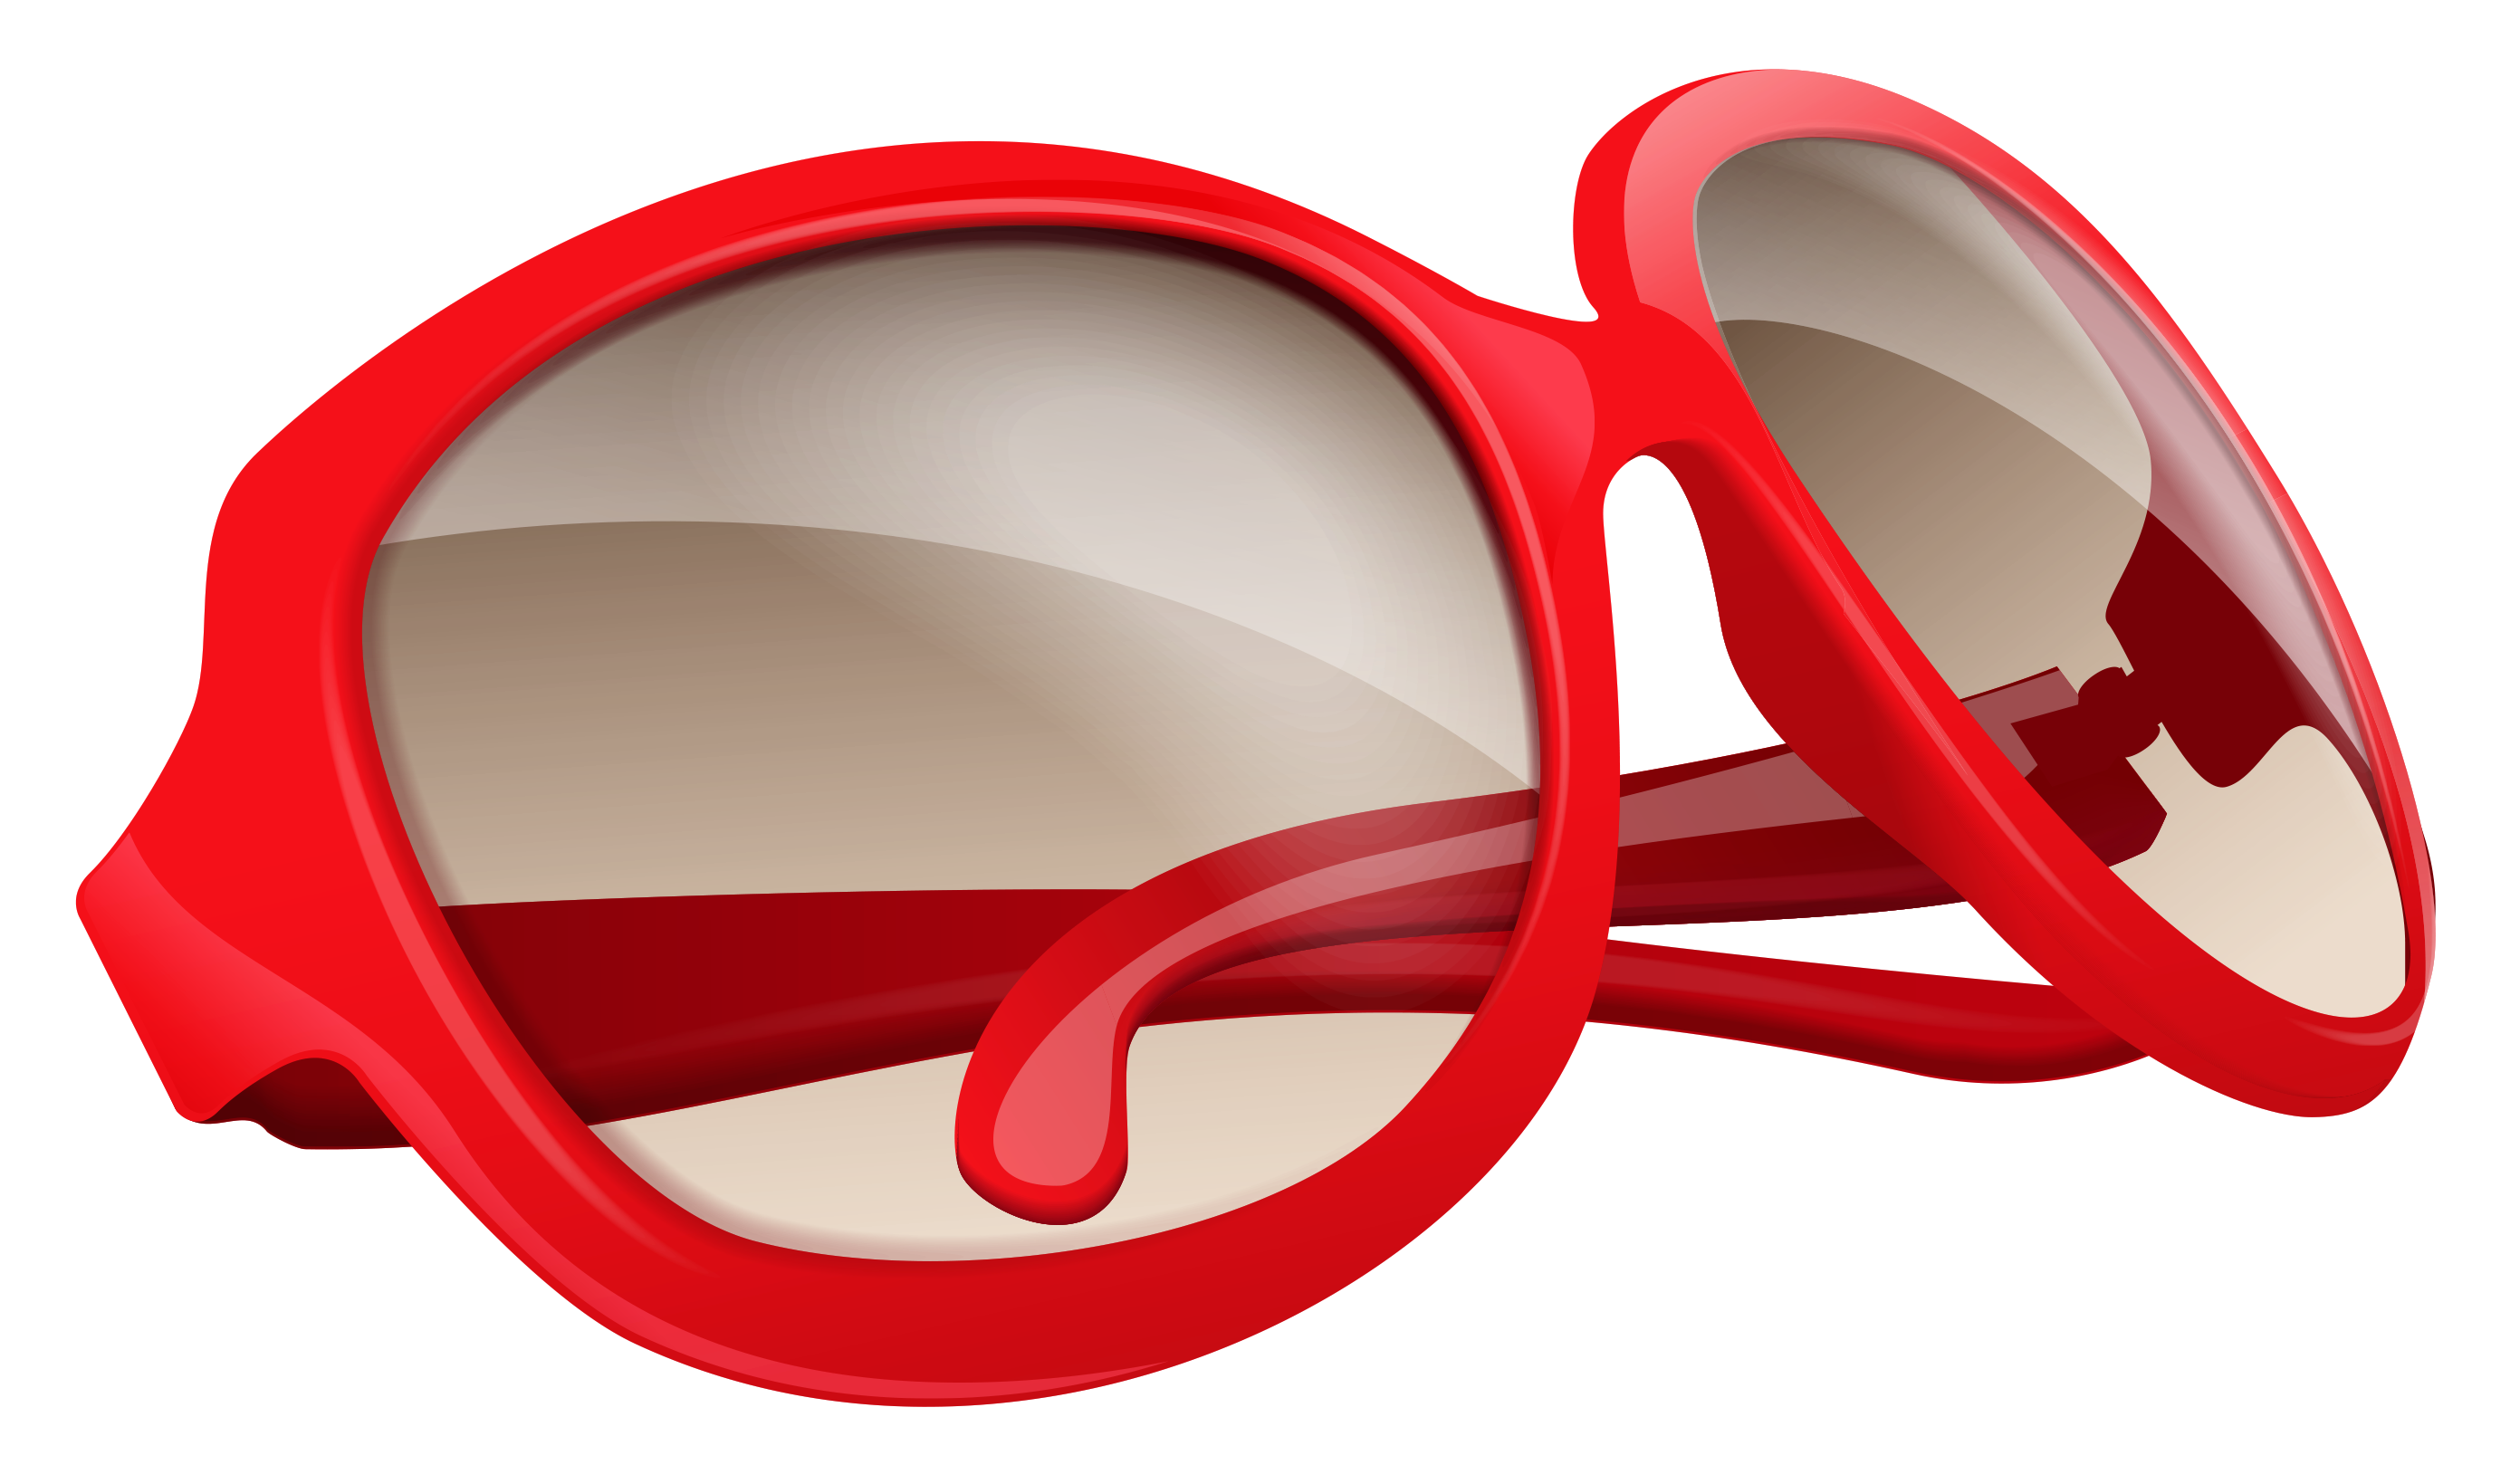 Sun with eclipse glasses clipart banner library Sunglasses PNG images free download banner library